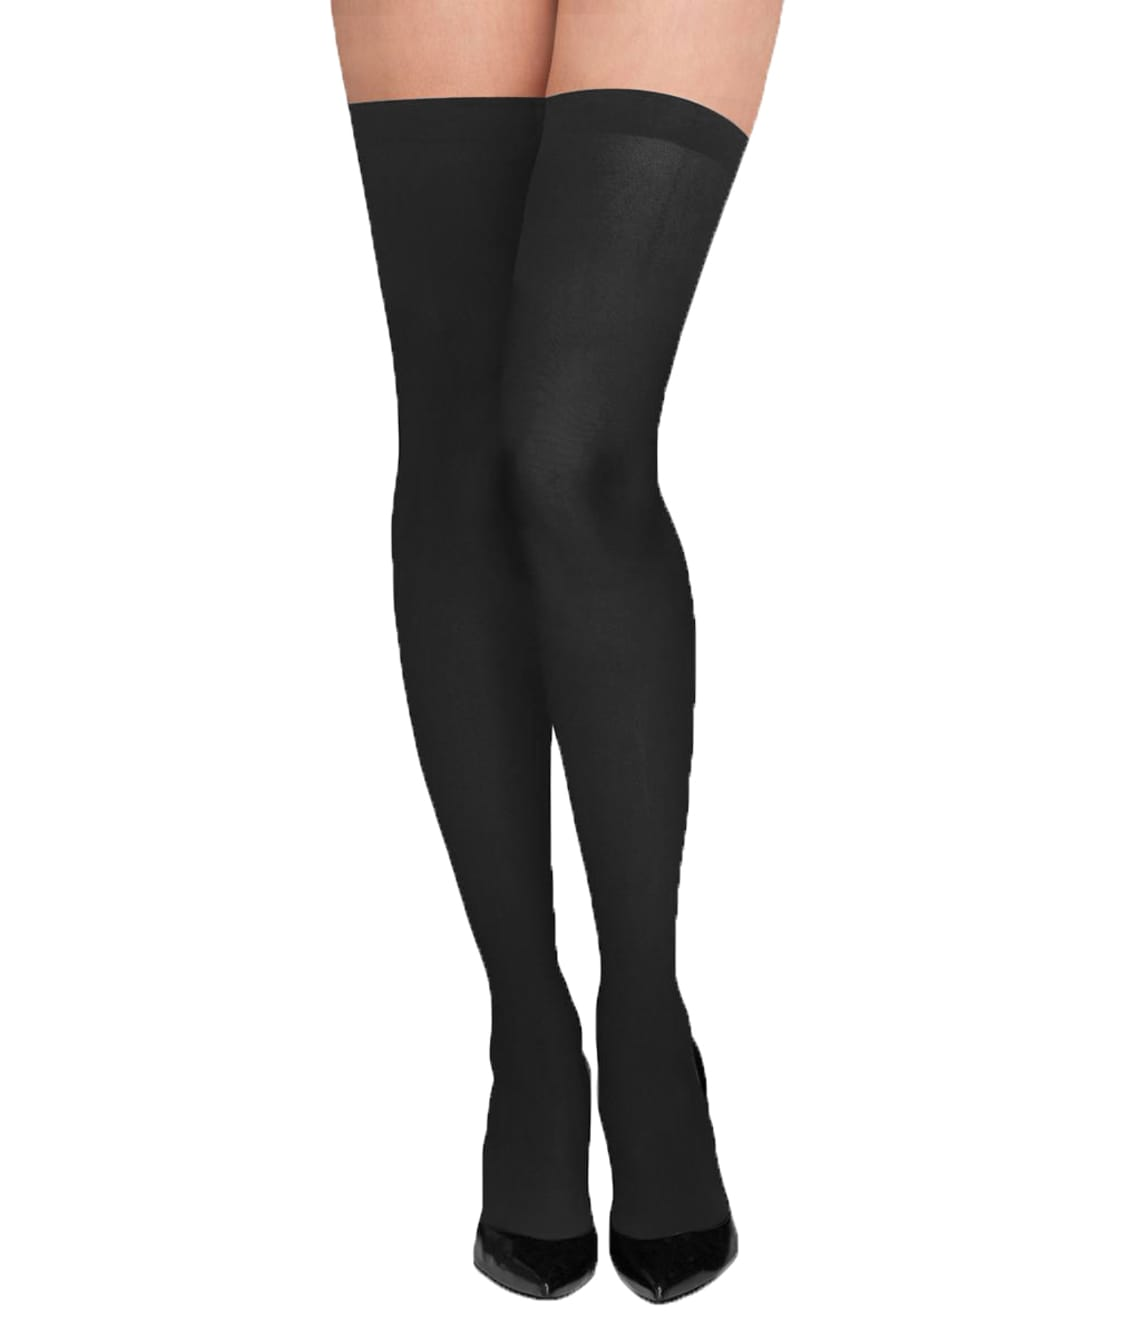 14339a4f8c140 List of Synonyms and Antonyms of the Word: Thighhighs